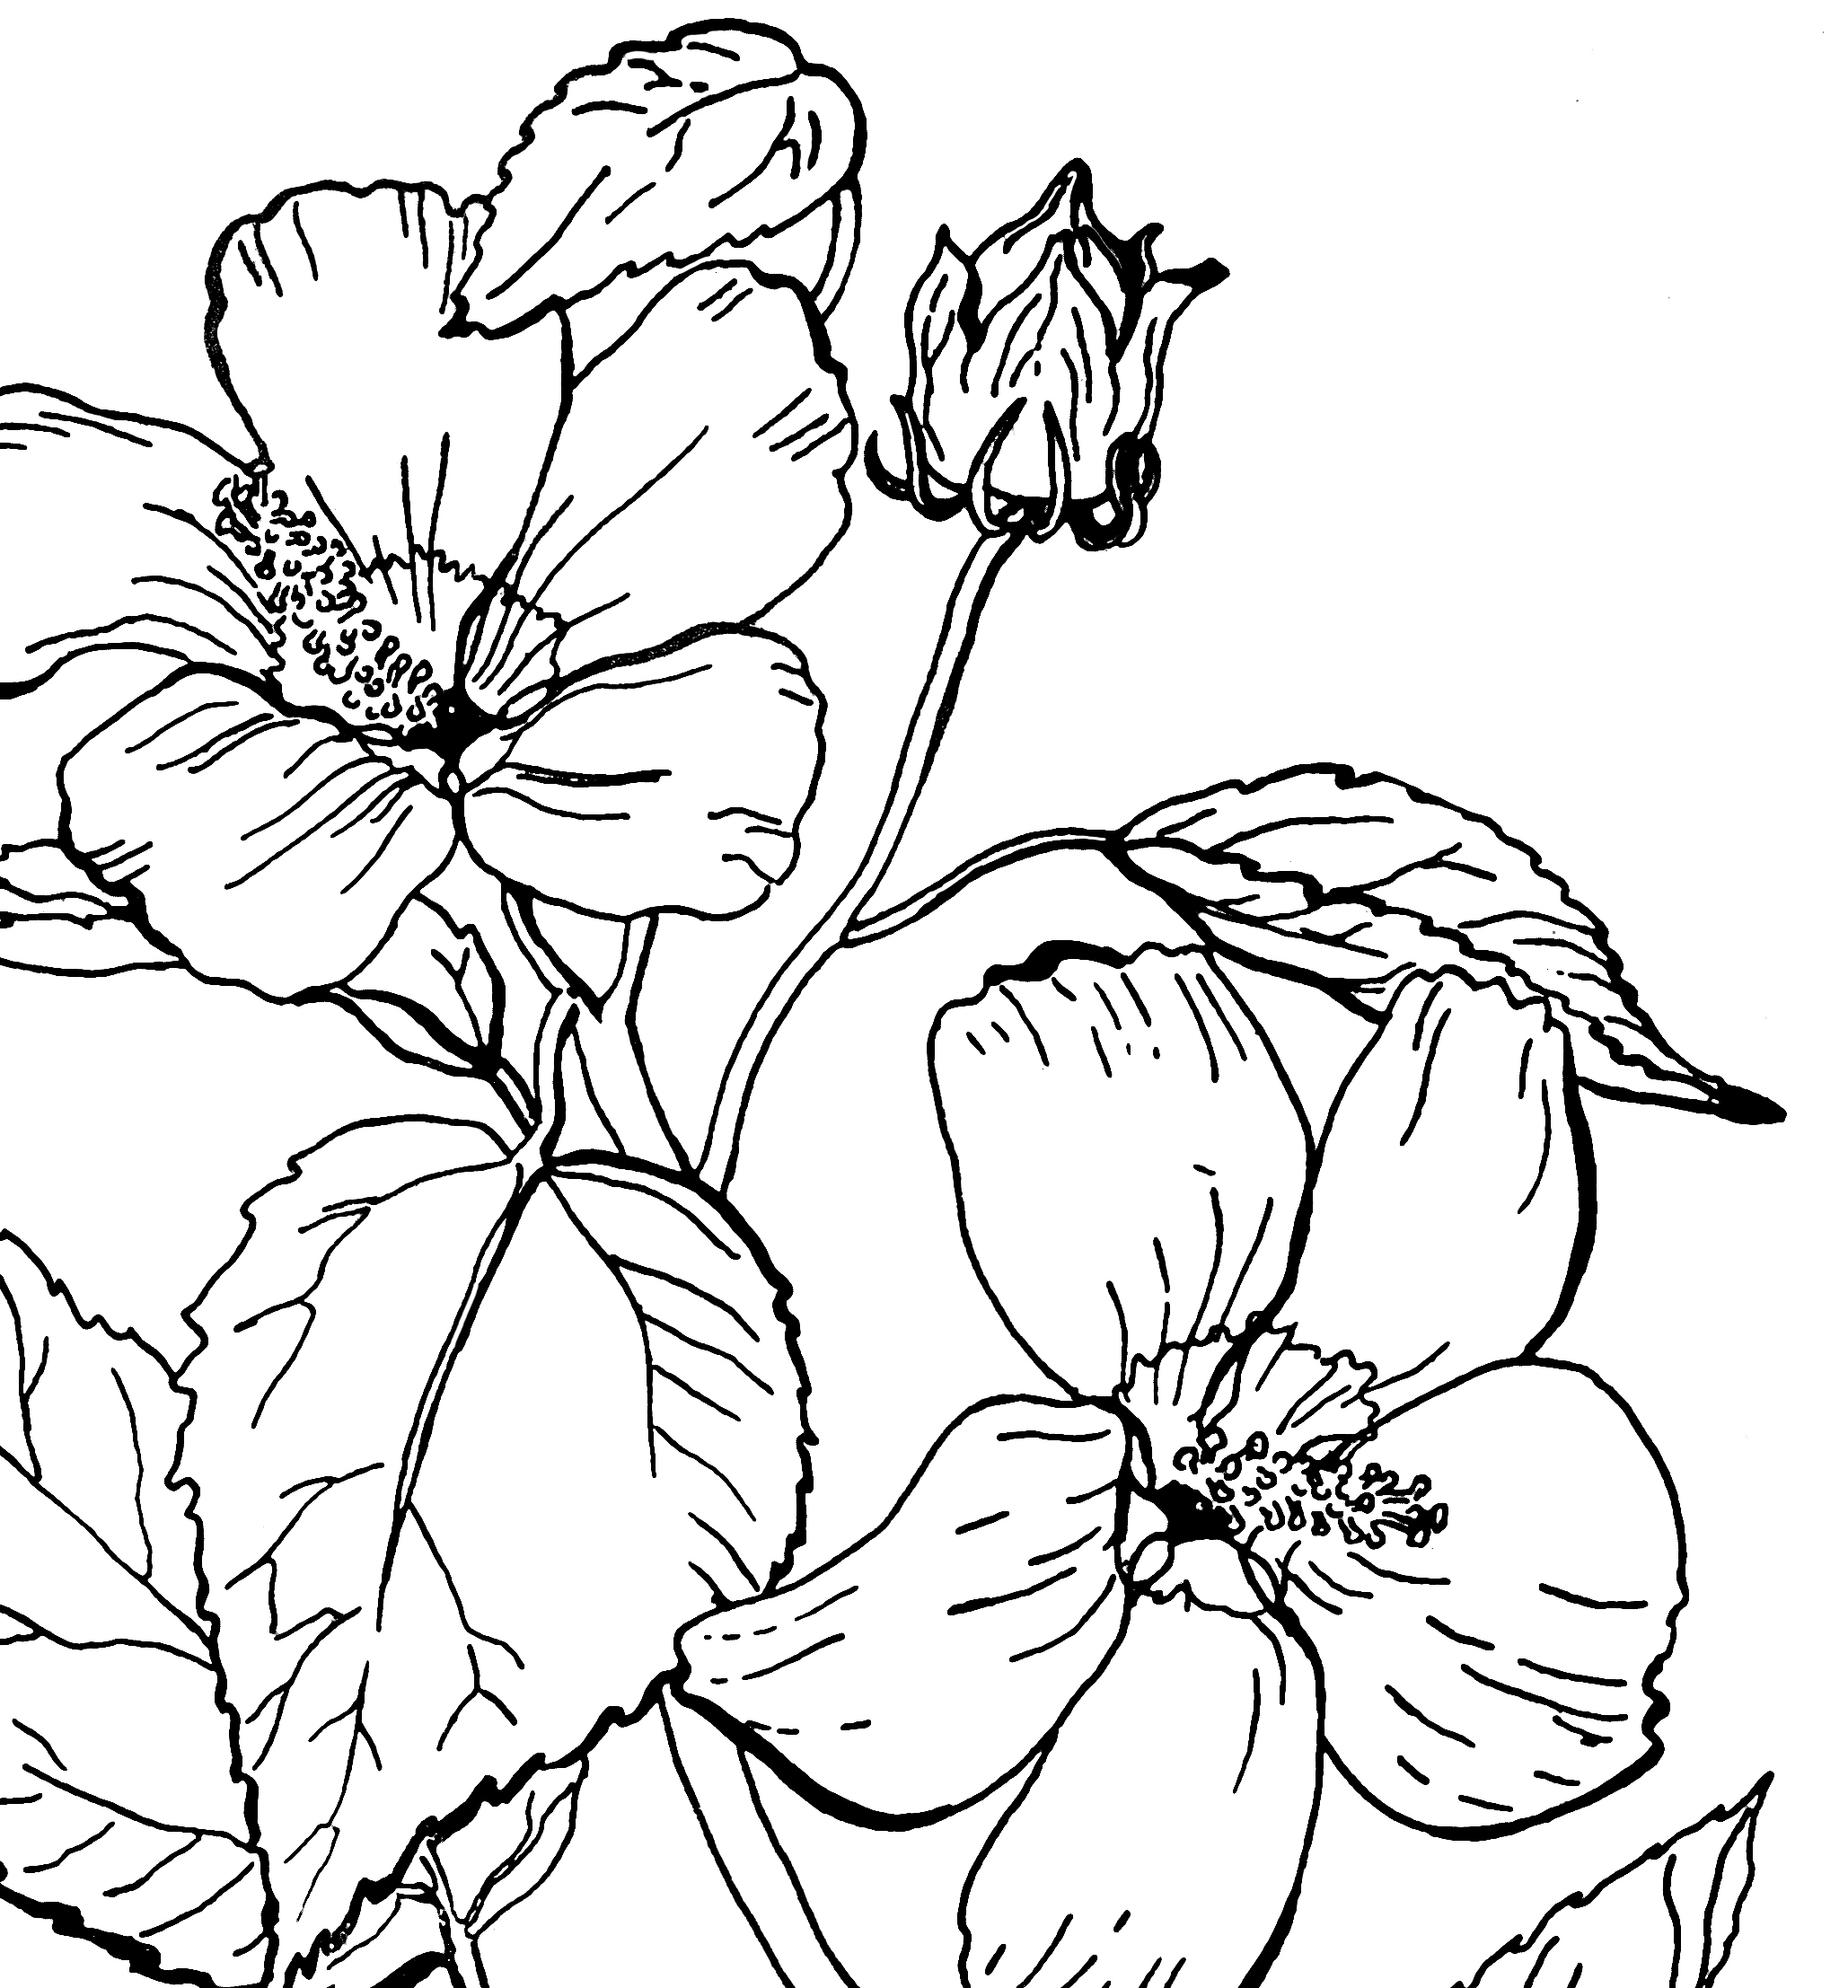 rose to color rose coloring pages download and print rose coloring pages rose to color